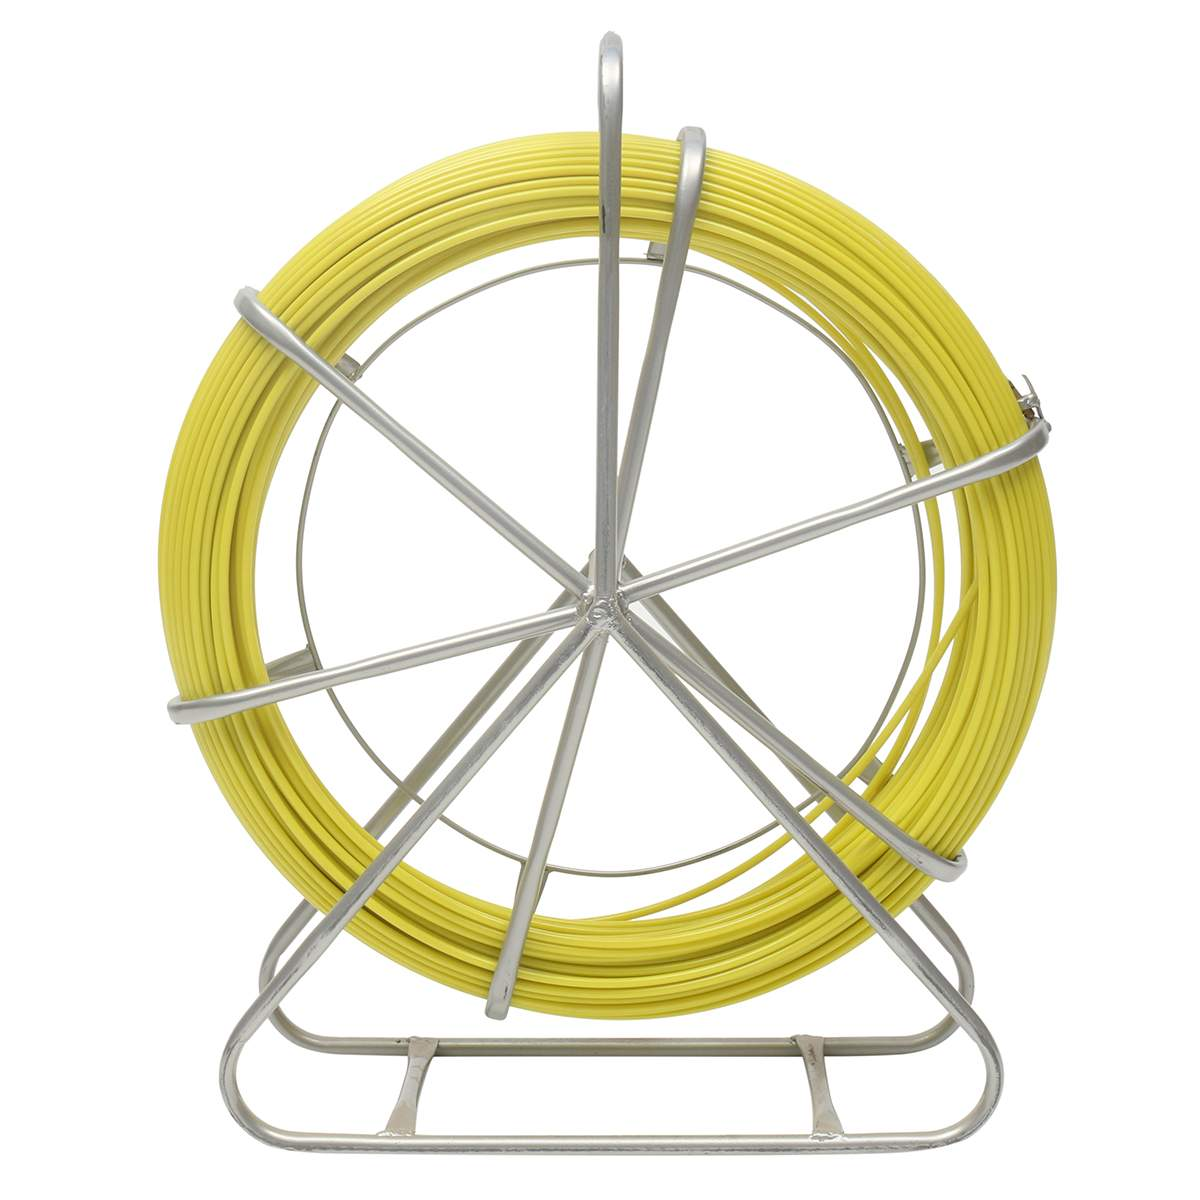 2Pcs Fish Tape Fiberglass Wire Cable Running Rod Duct Rodder Puller 【USA SHIP】